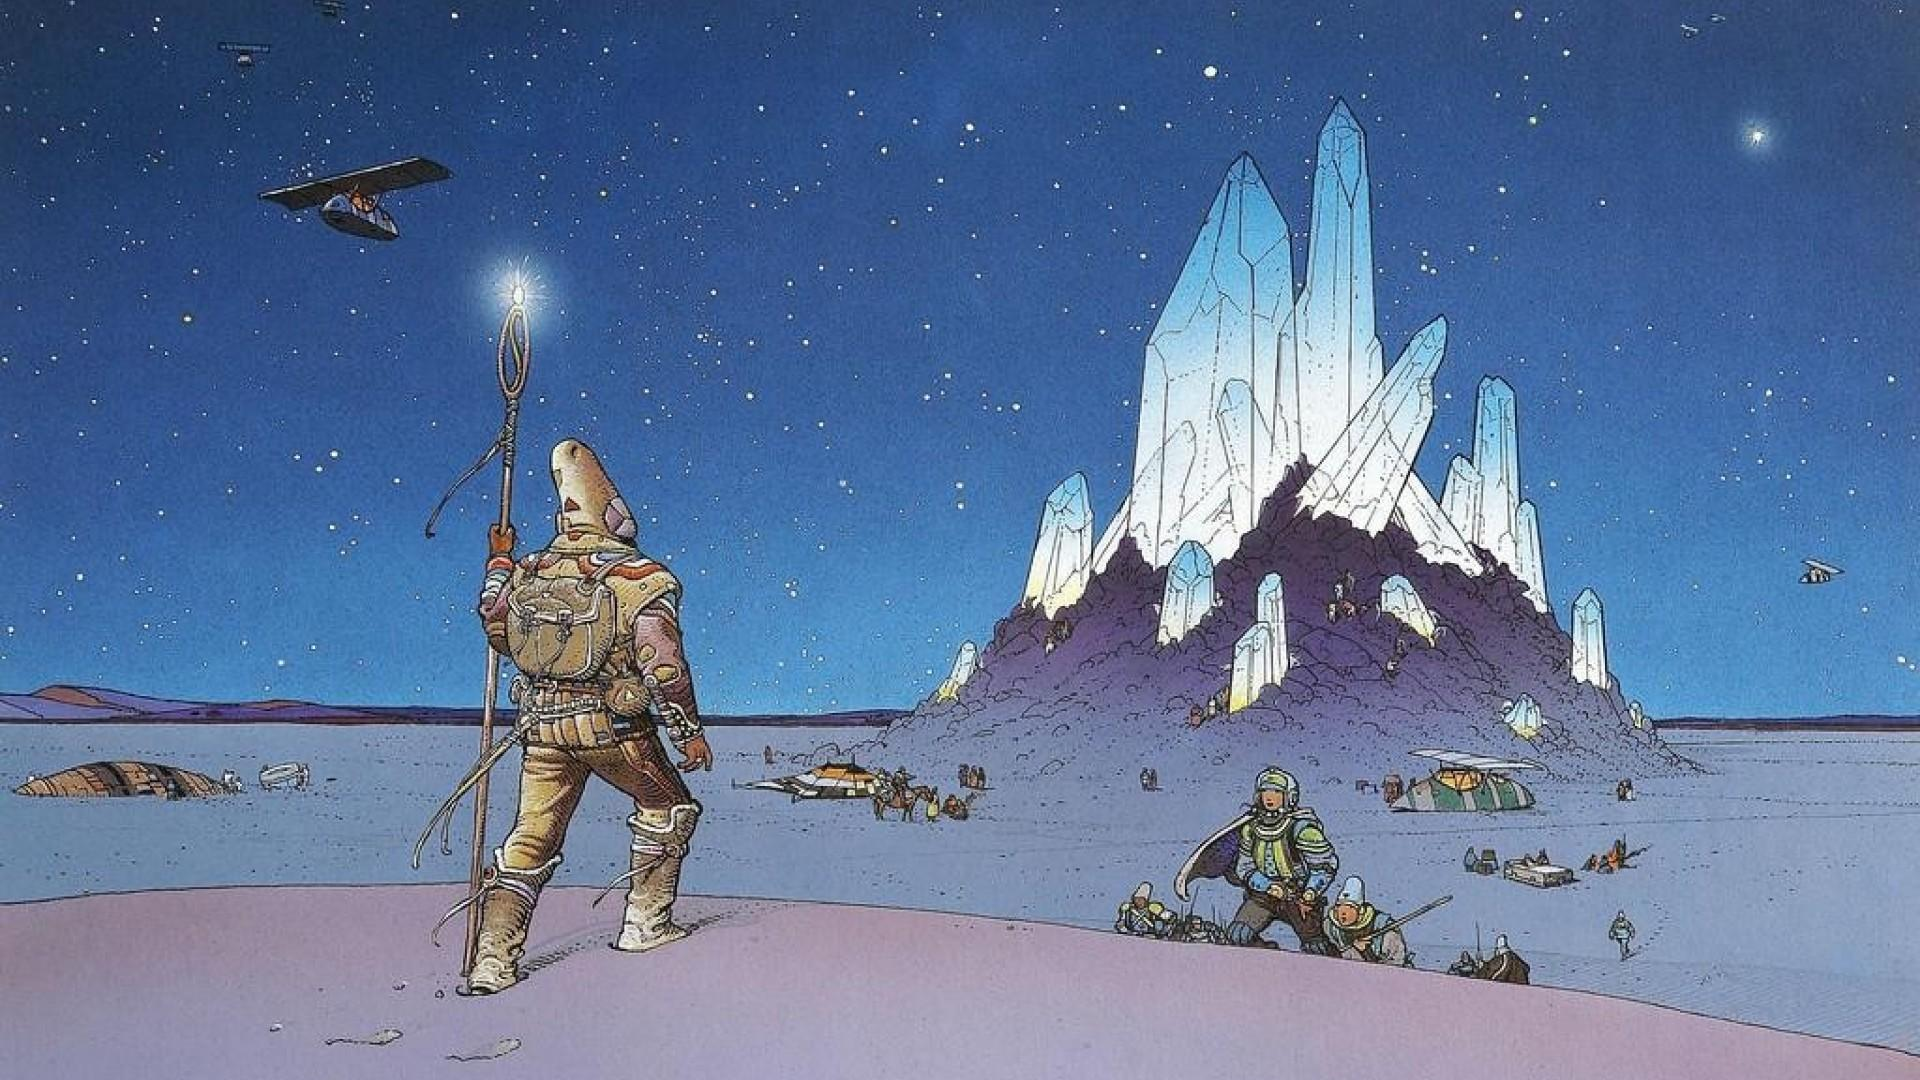 Moebius wallpaper - SF Wallpaper